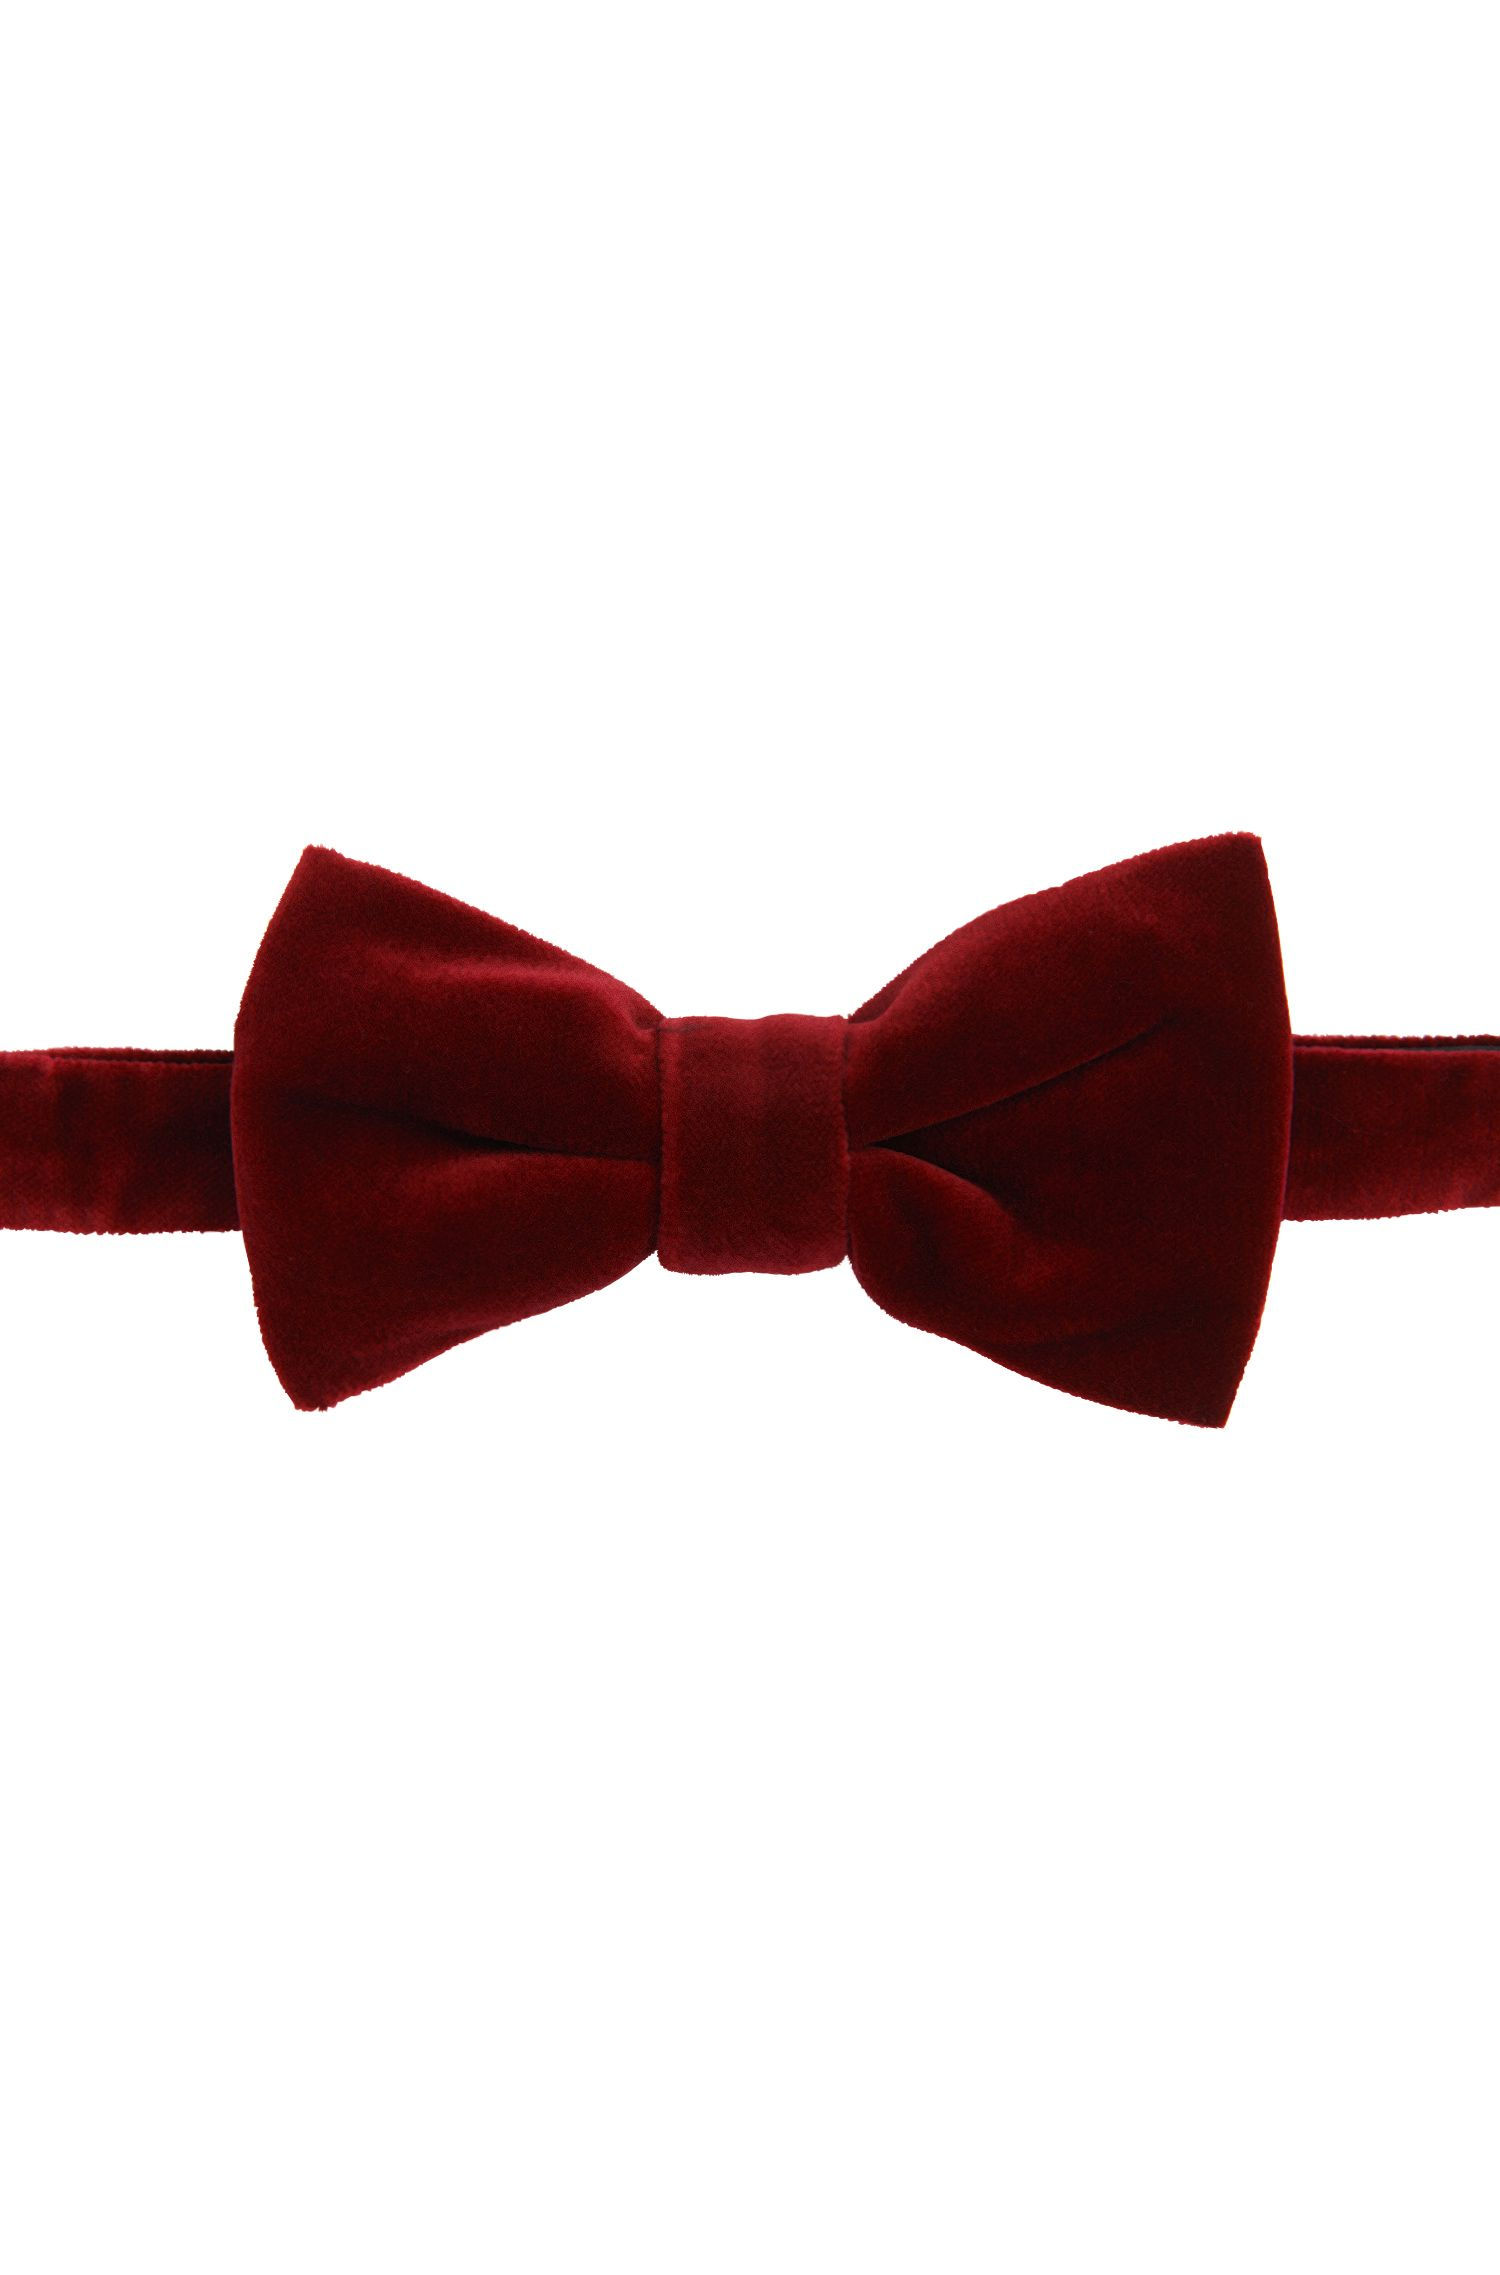 'Bow Tie Big Velvet' | Italian Stretch Cotton Velvet Bow Tie